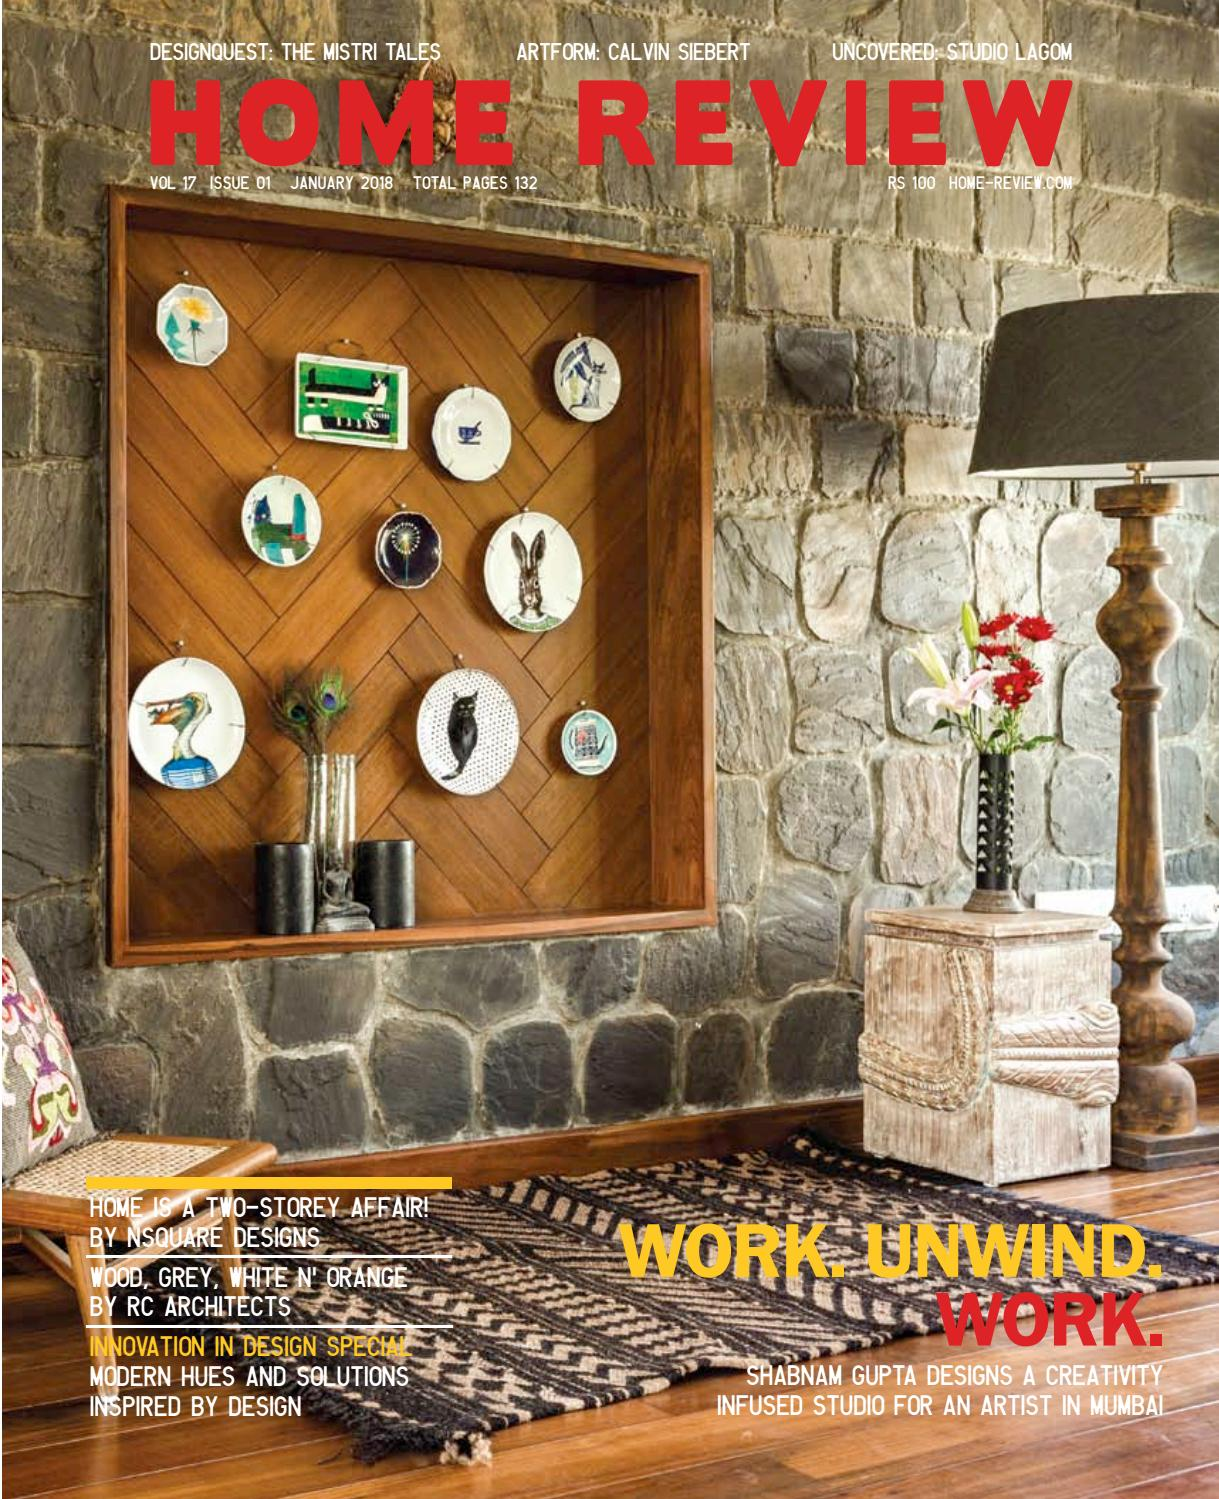 Home Review January 2018 By Home Review Issuu